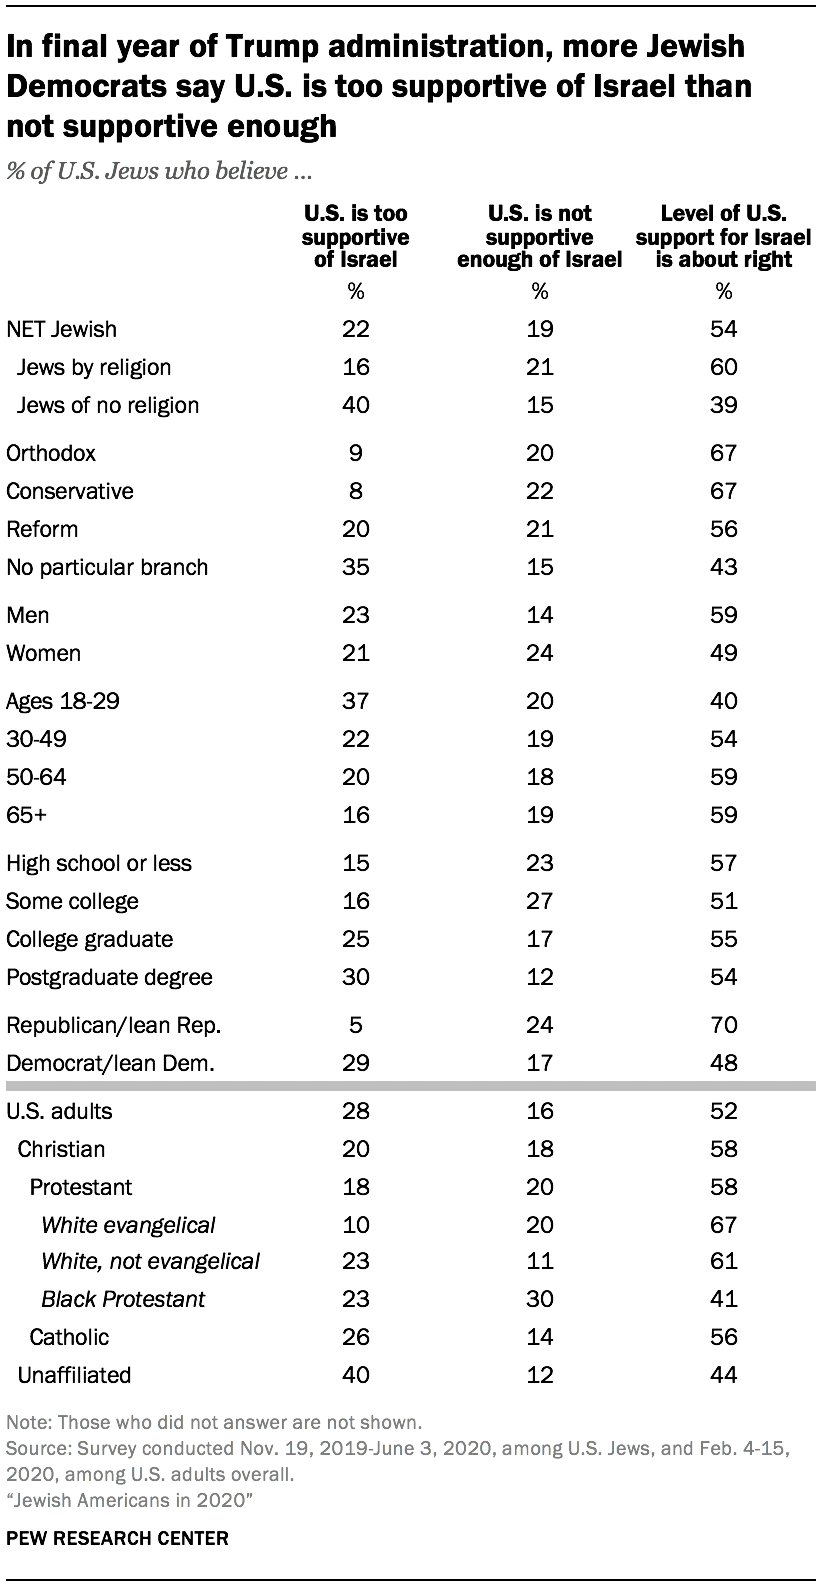 In final year of Trump administration, more Jewish Democrats say U.S. is too supportive of Israel than not supportive enough